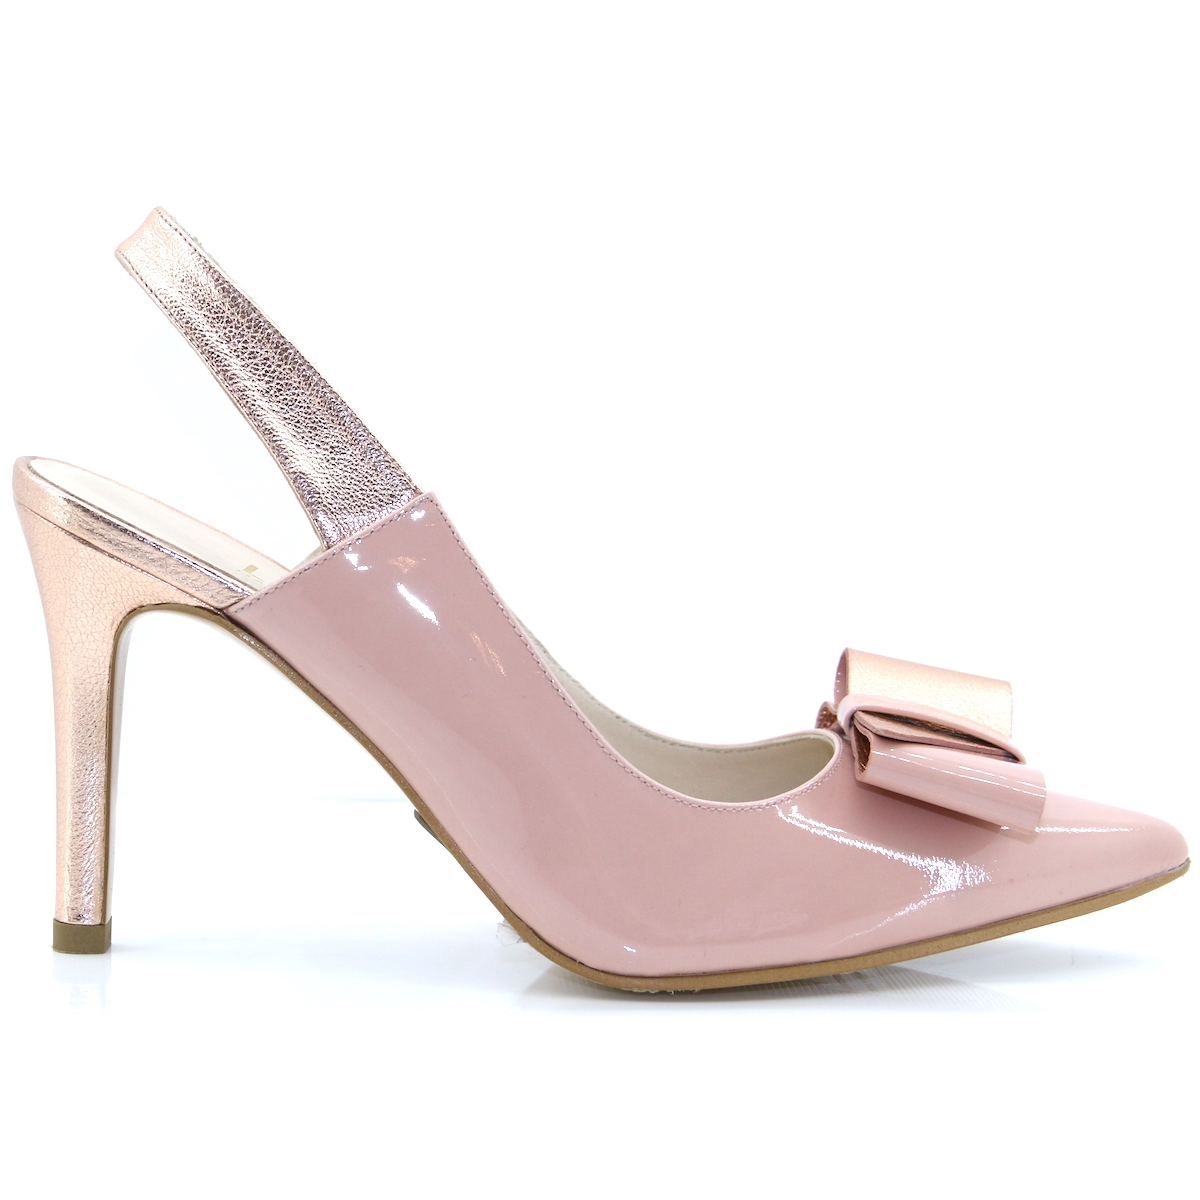 0bd7f8dc11 Radka - LODI NUDE AND ROSE GOLD OCCASION HEELS - Panache Shoe Company